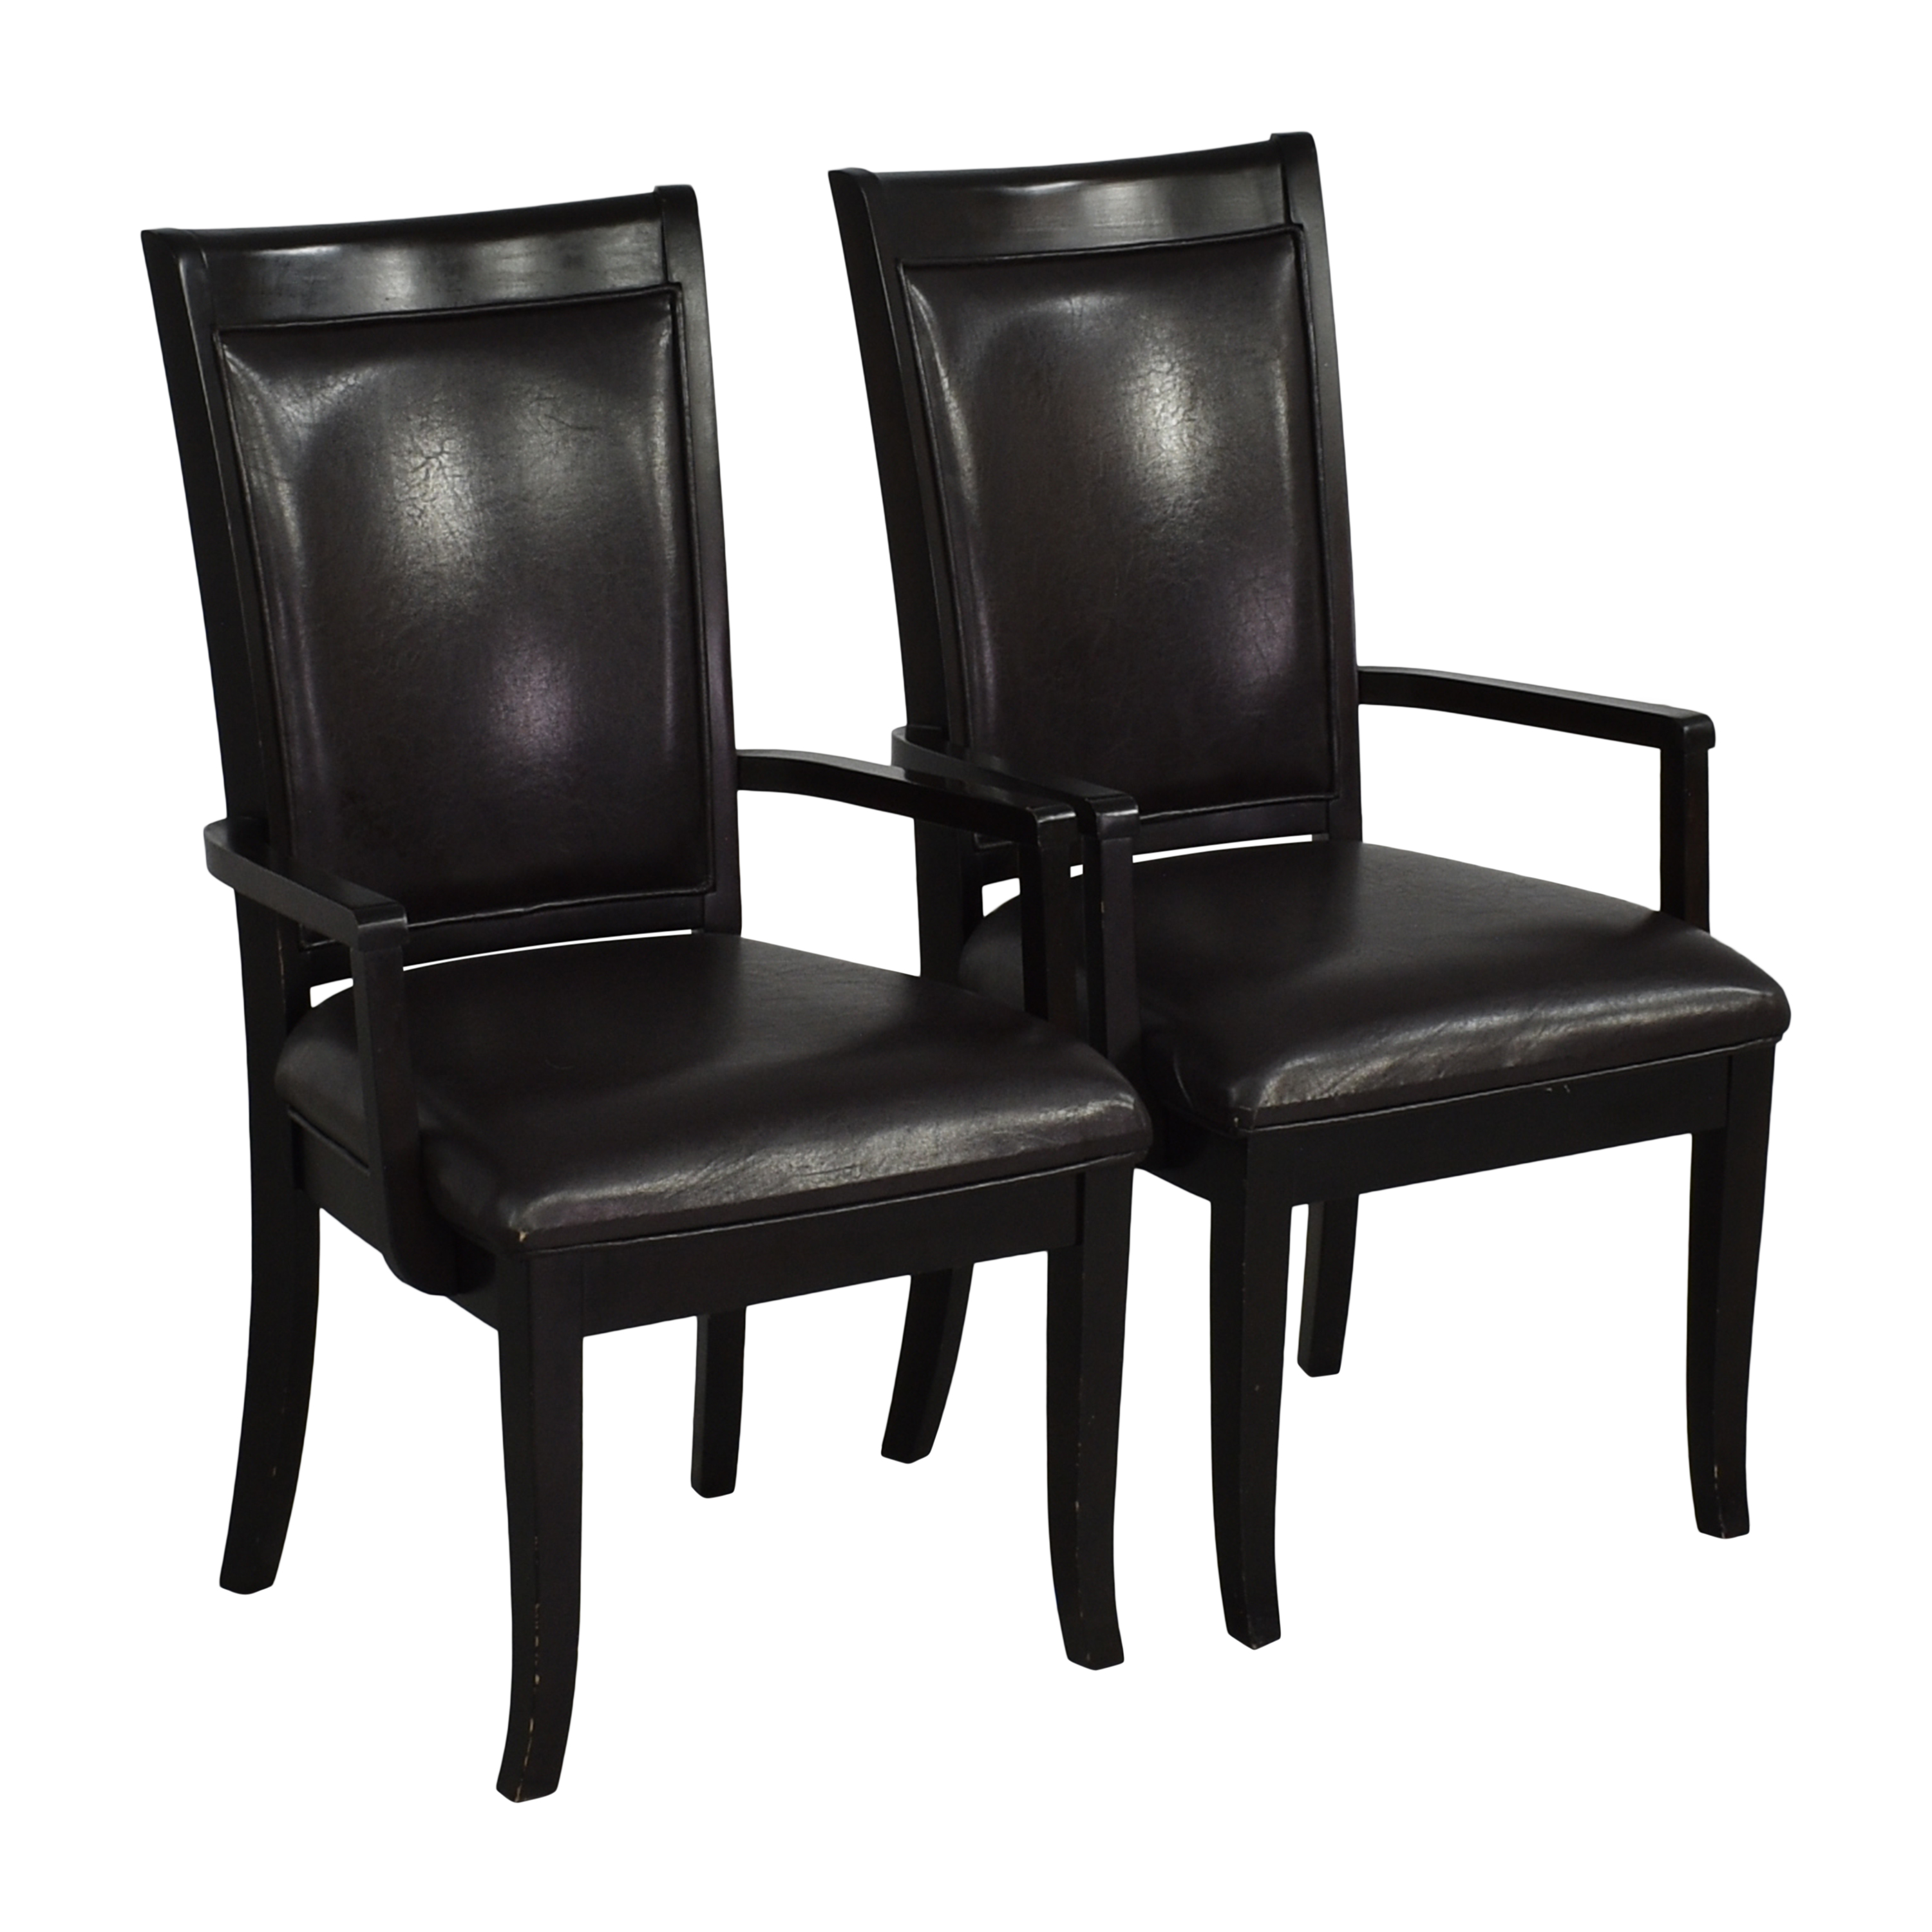 Poundex Poundex Dining Arm Chairs used